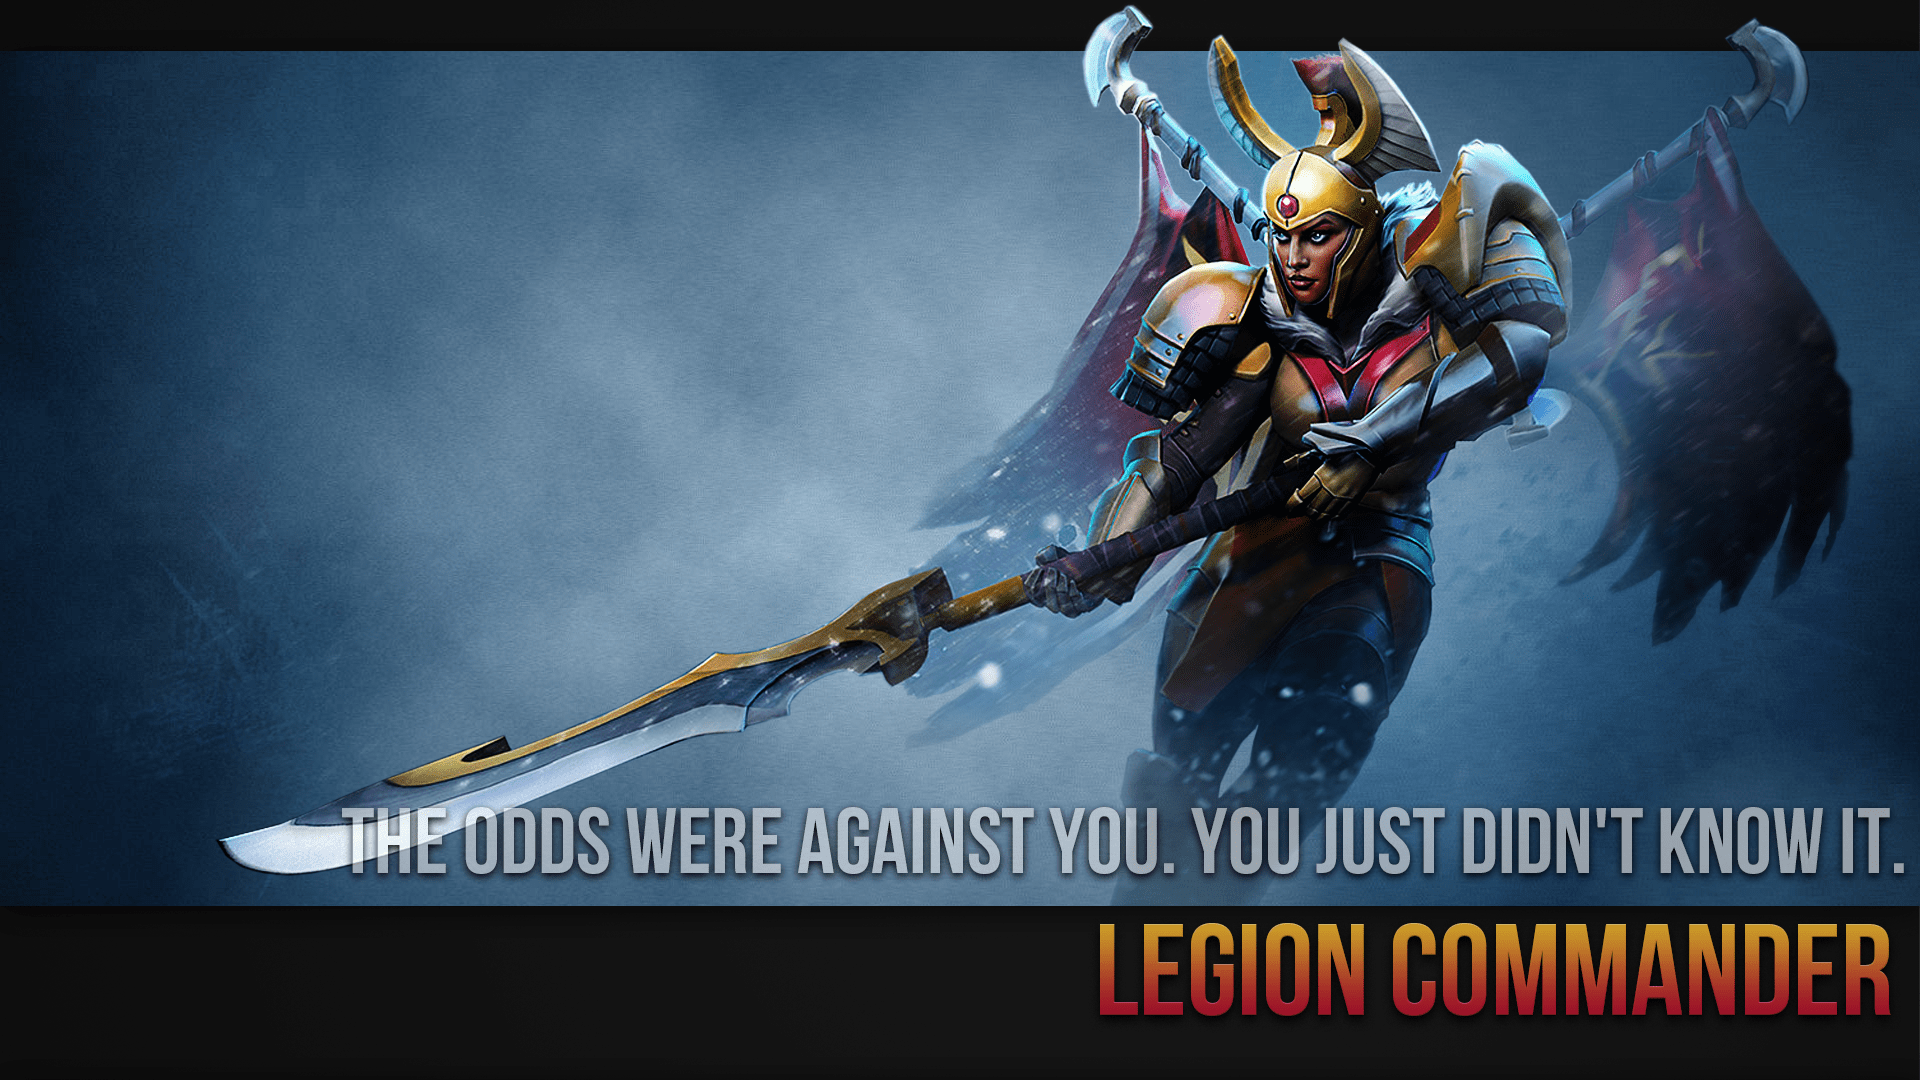 Cool Quote Wallpapers For Mobile Dota 2 Hd Wallpaper Background Image 1920x1080 Id